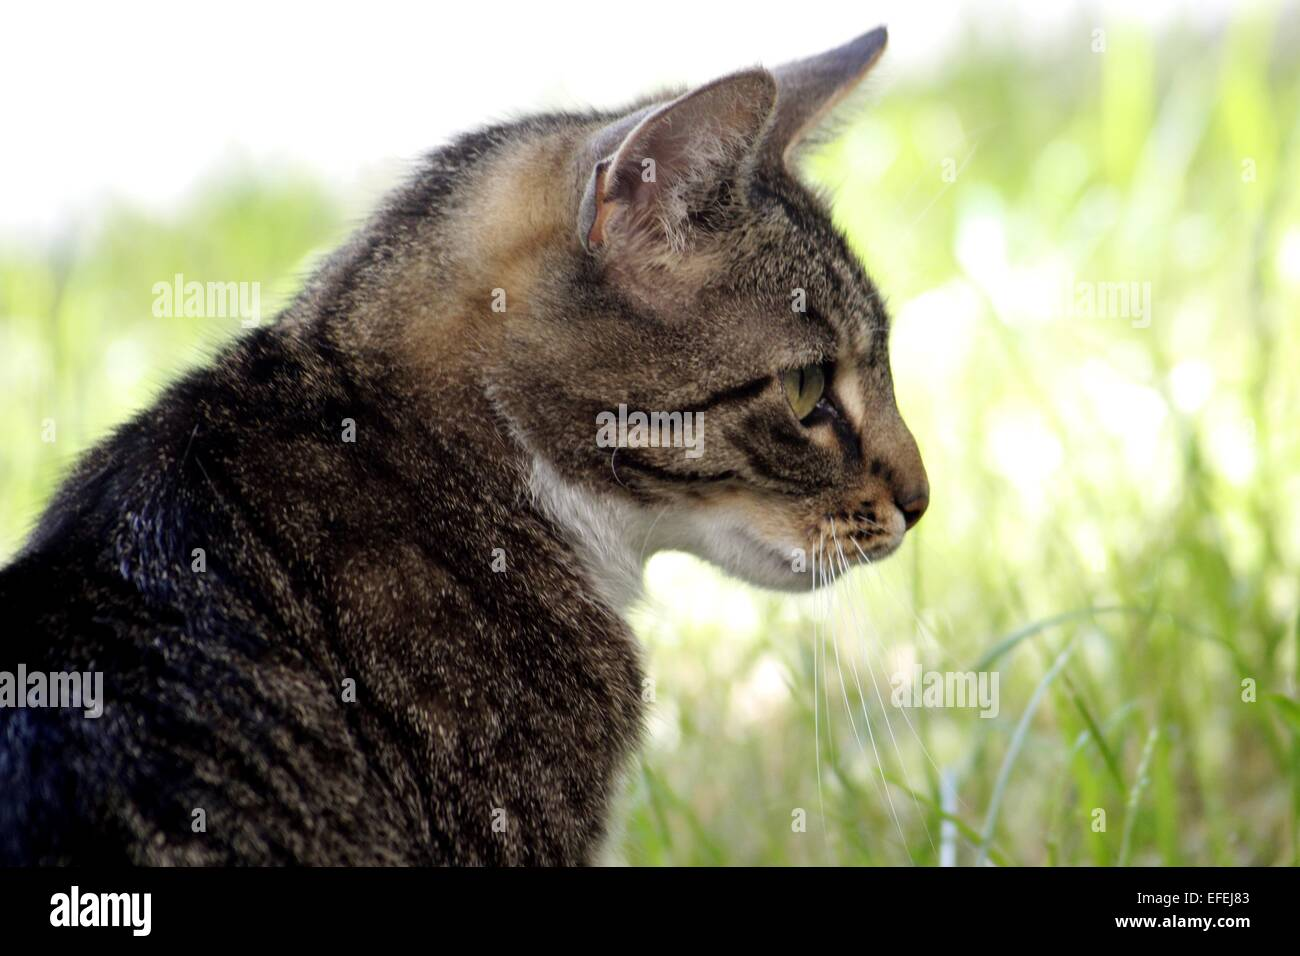 Pet cat outside in daylight - Stock Image